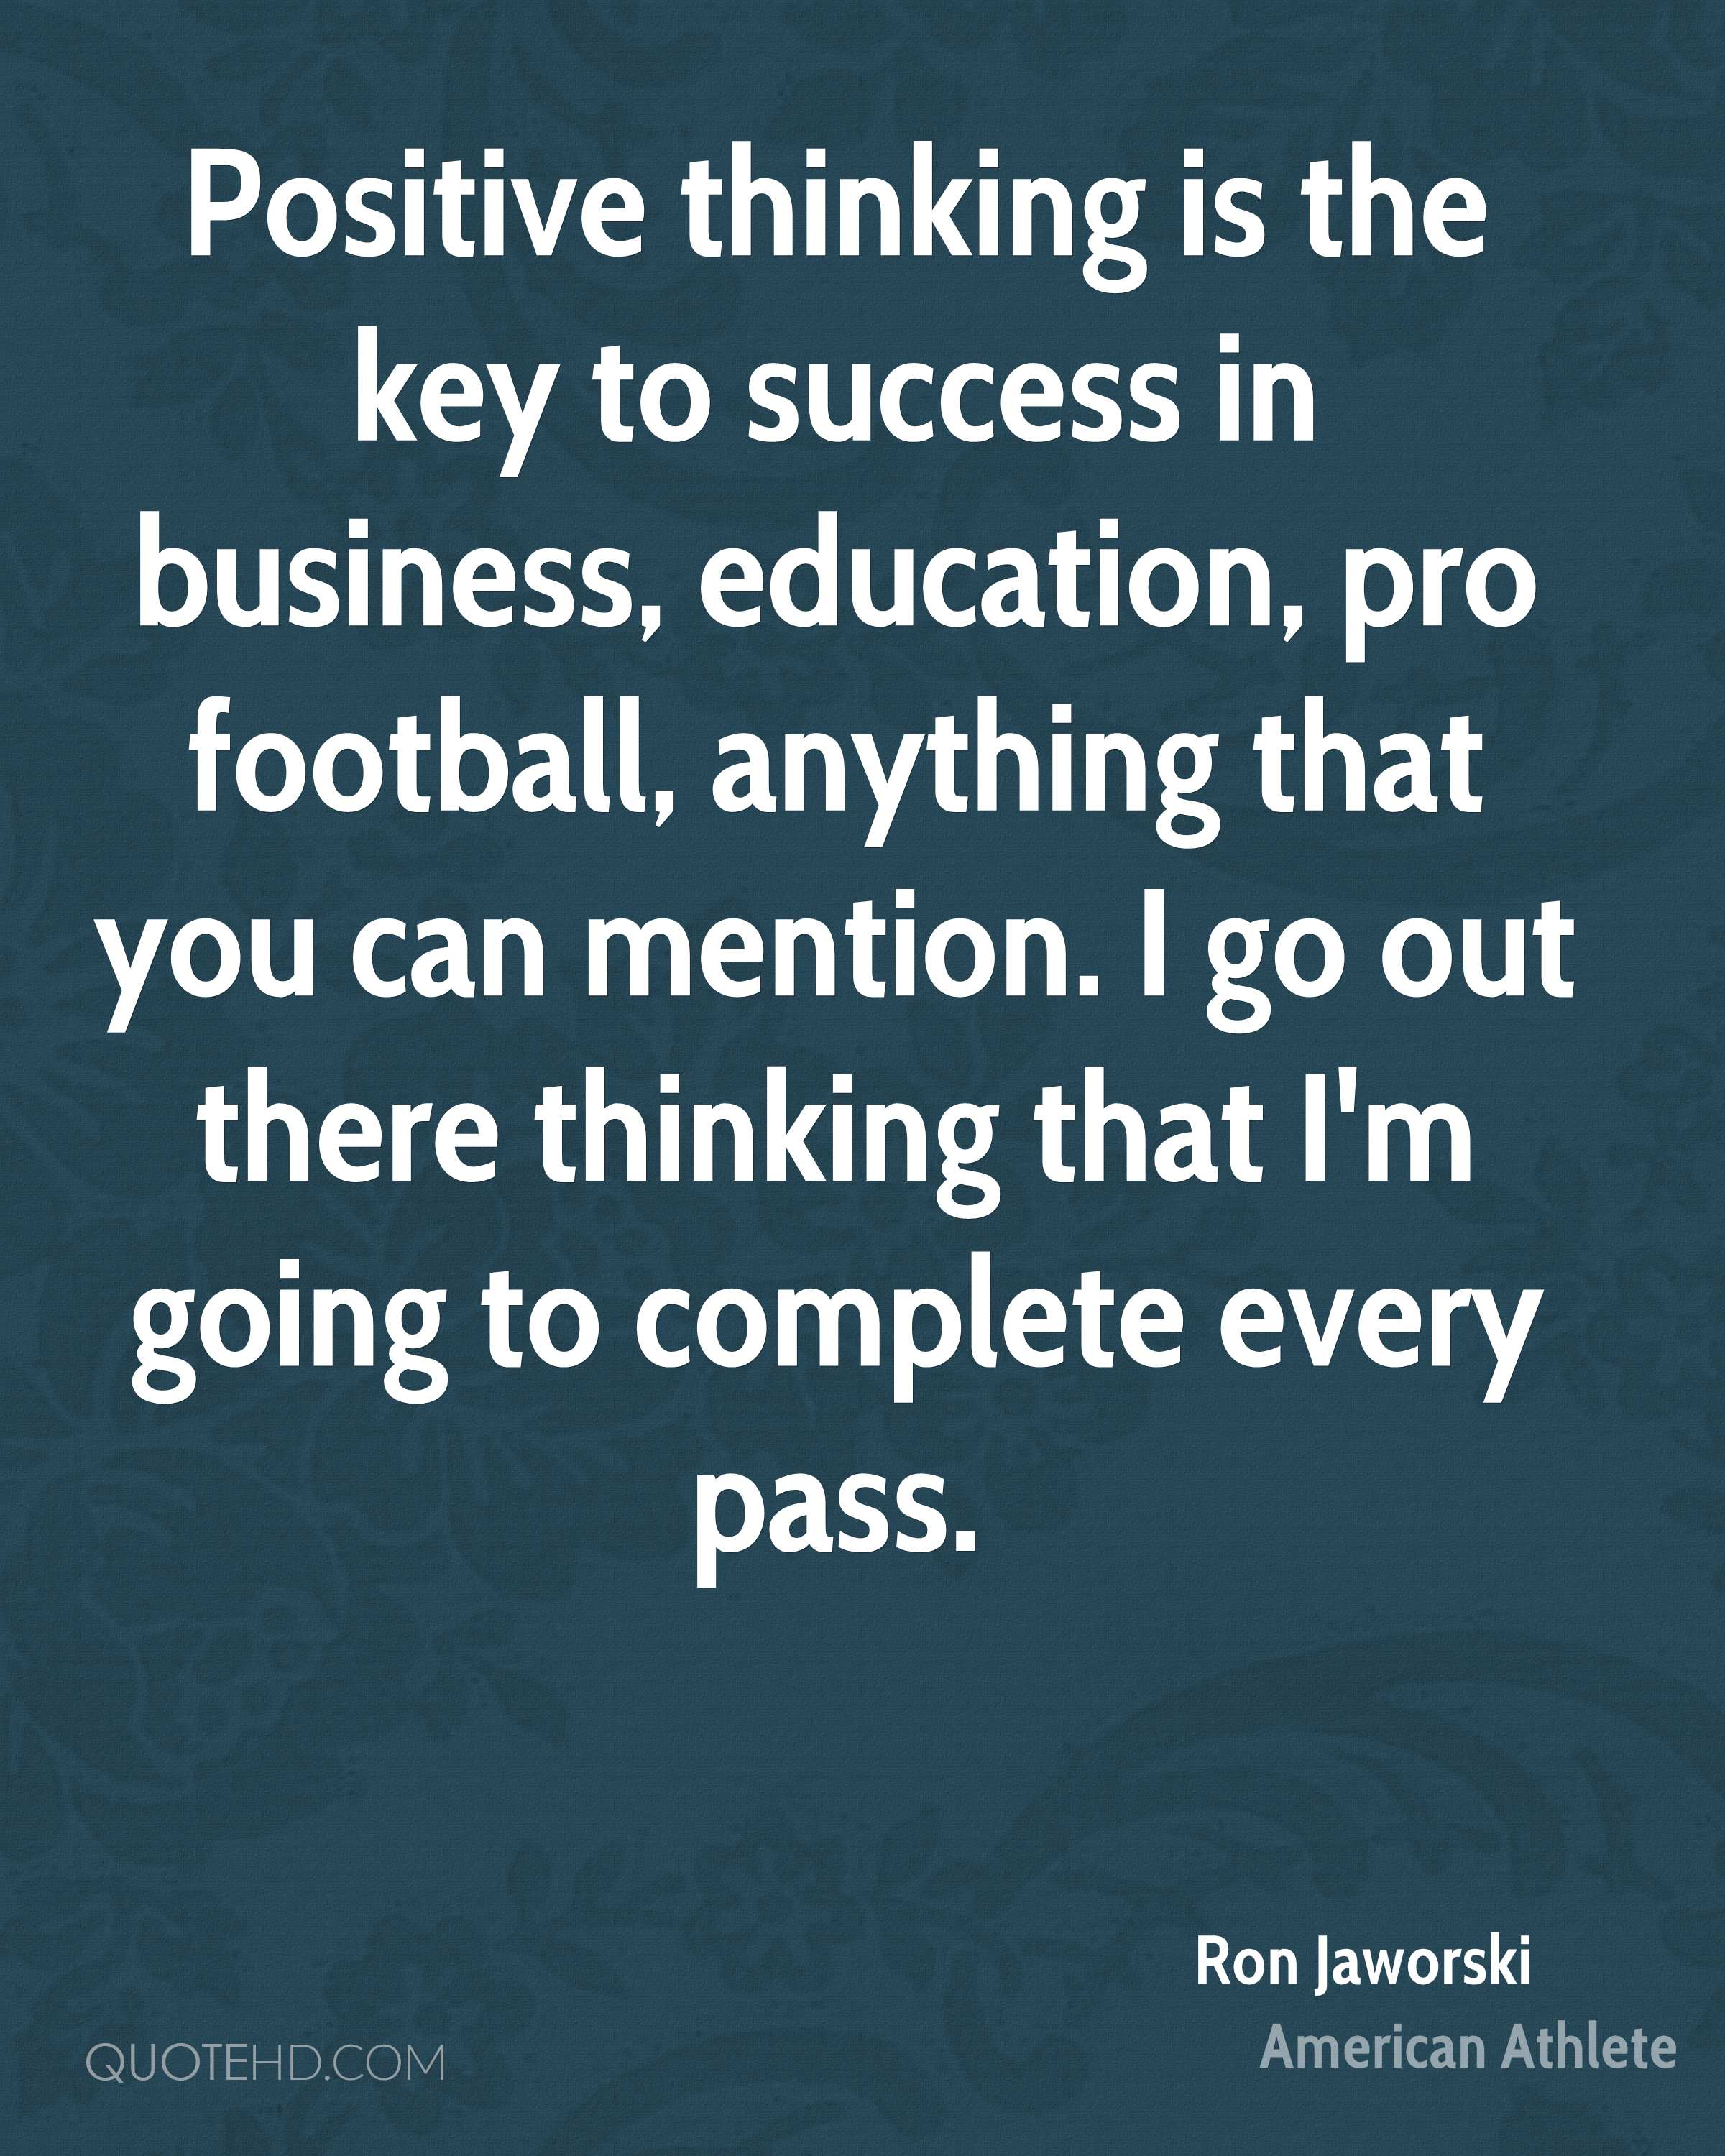 collection quotes on education and success chatorioles ron jaworski education quotes quotehd